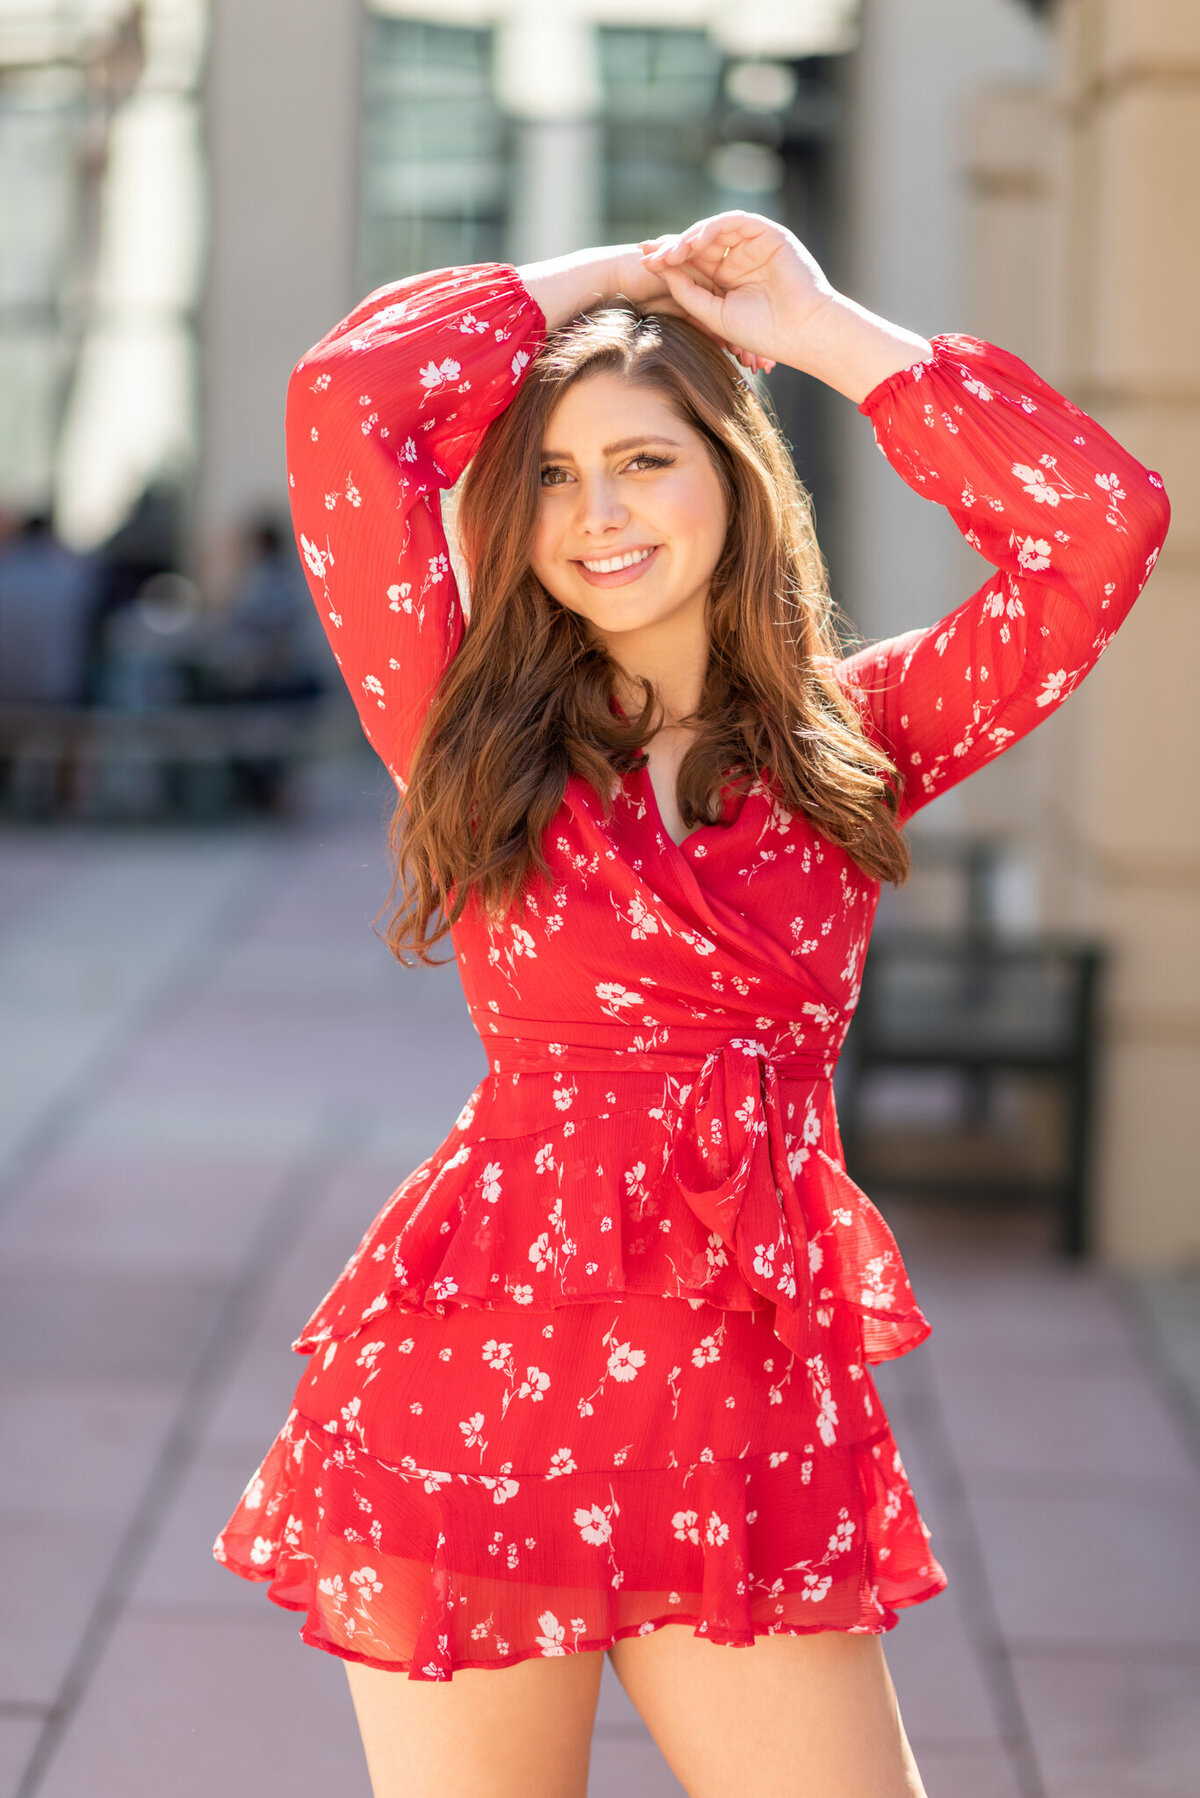 Smiling-woman-in-red-romper-high-school-senior-pictures-ivy-towler-iowa-photography